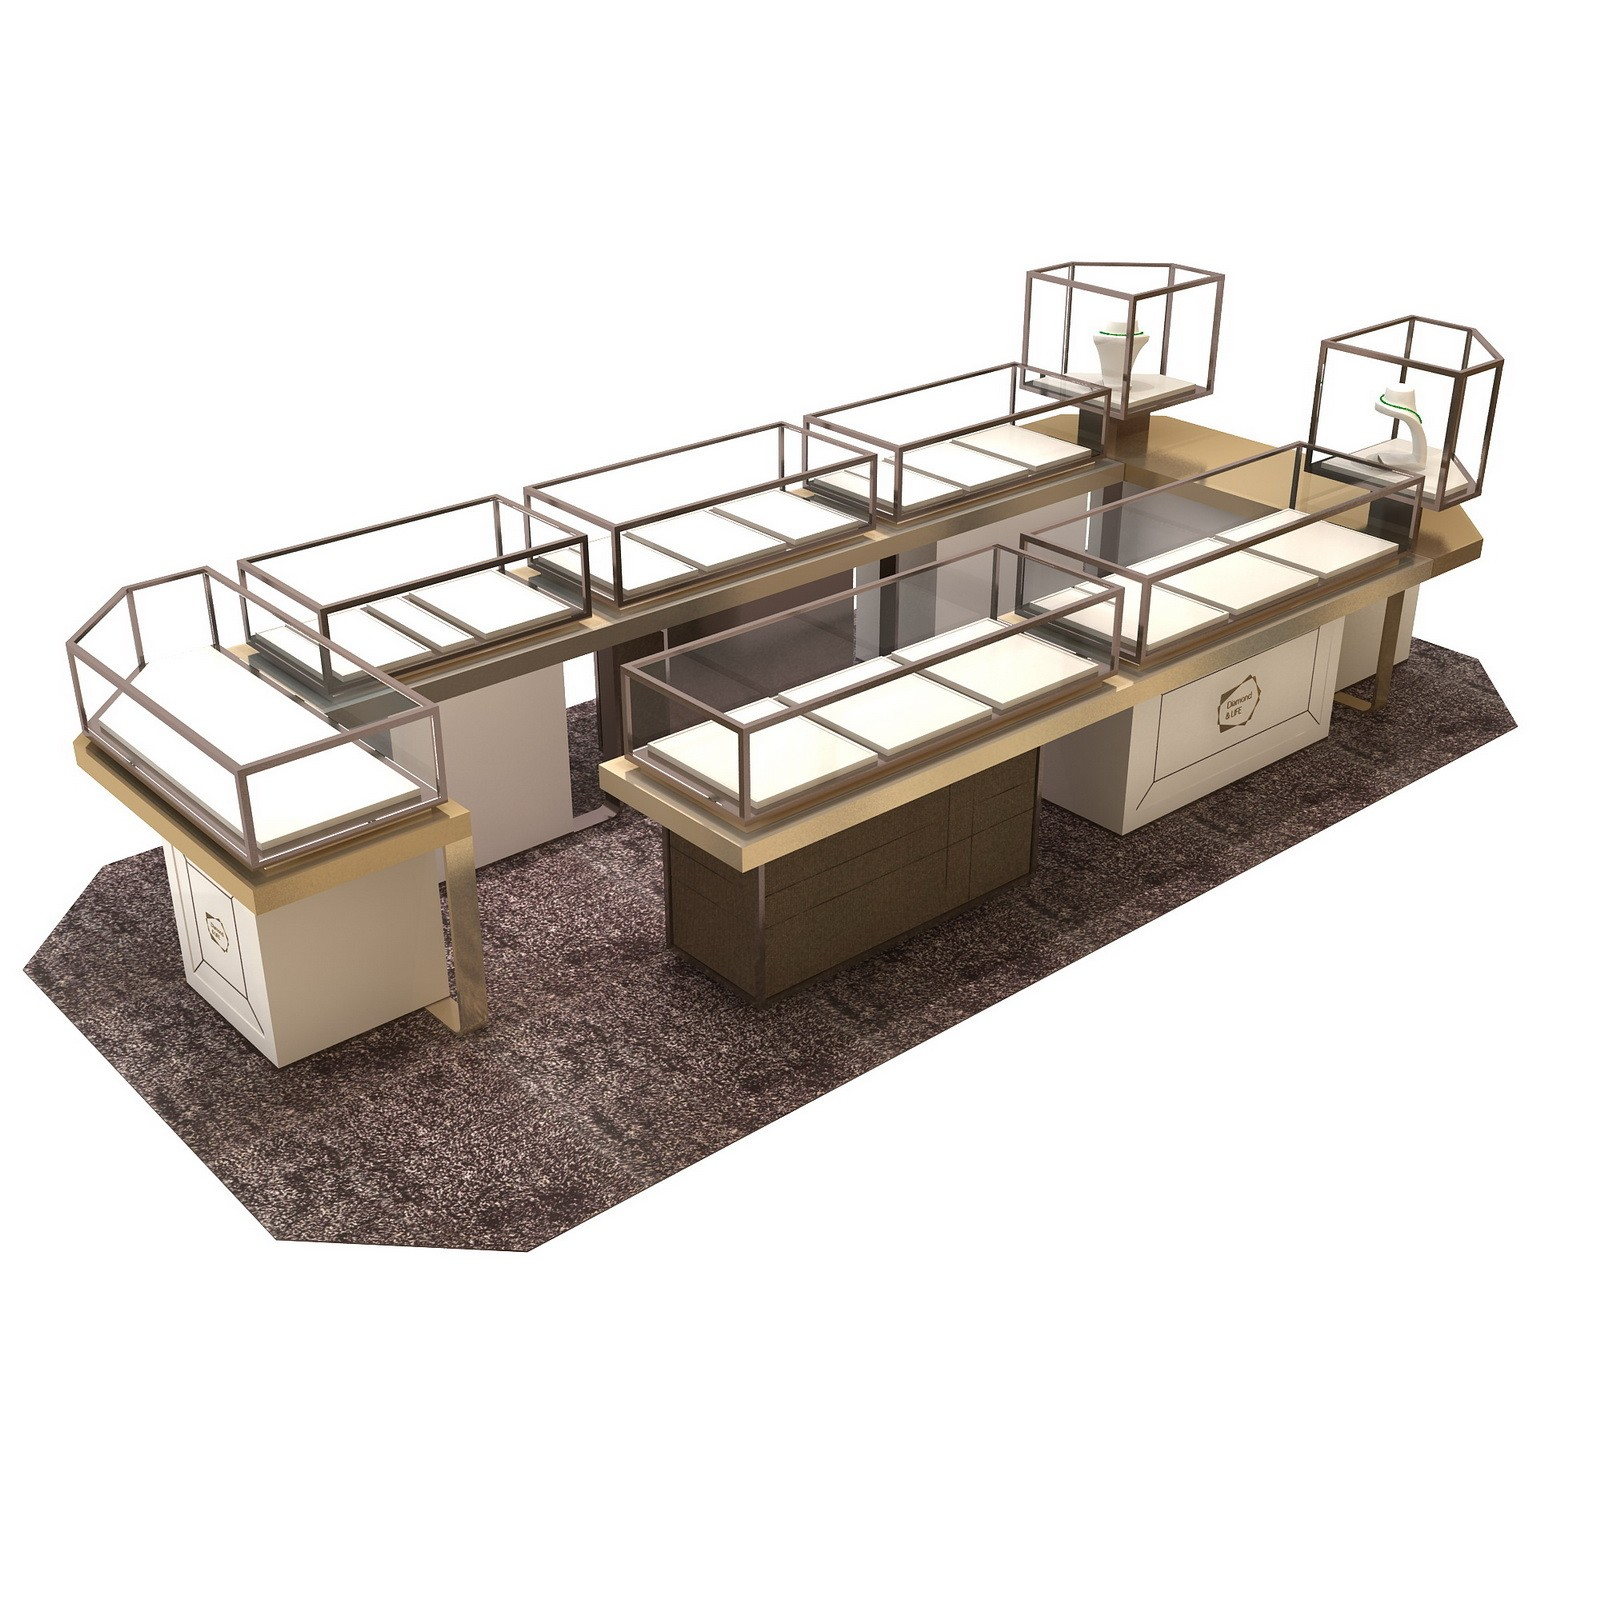 retail jewellery display cabinets commercial for store OUYEE-4